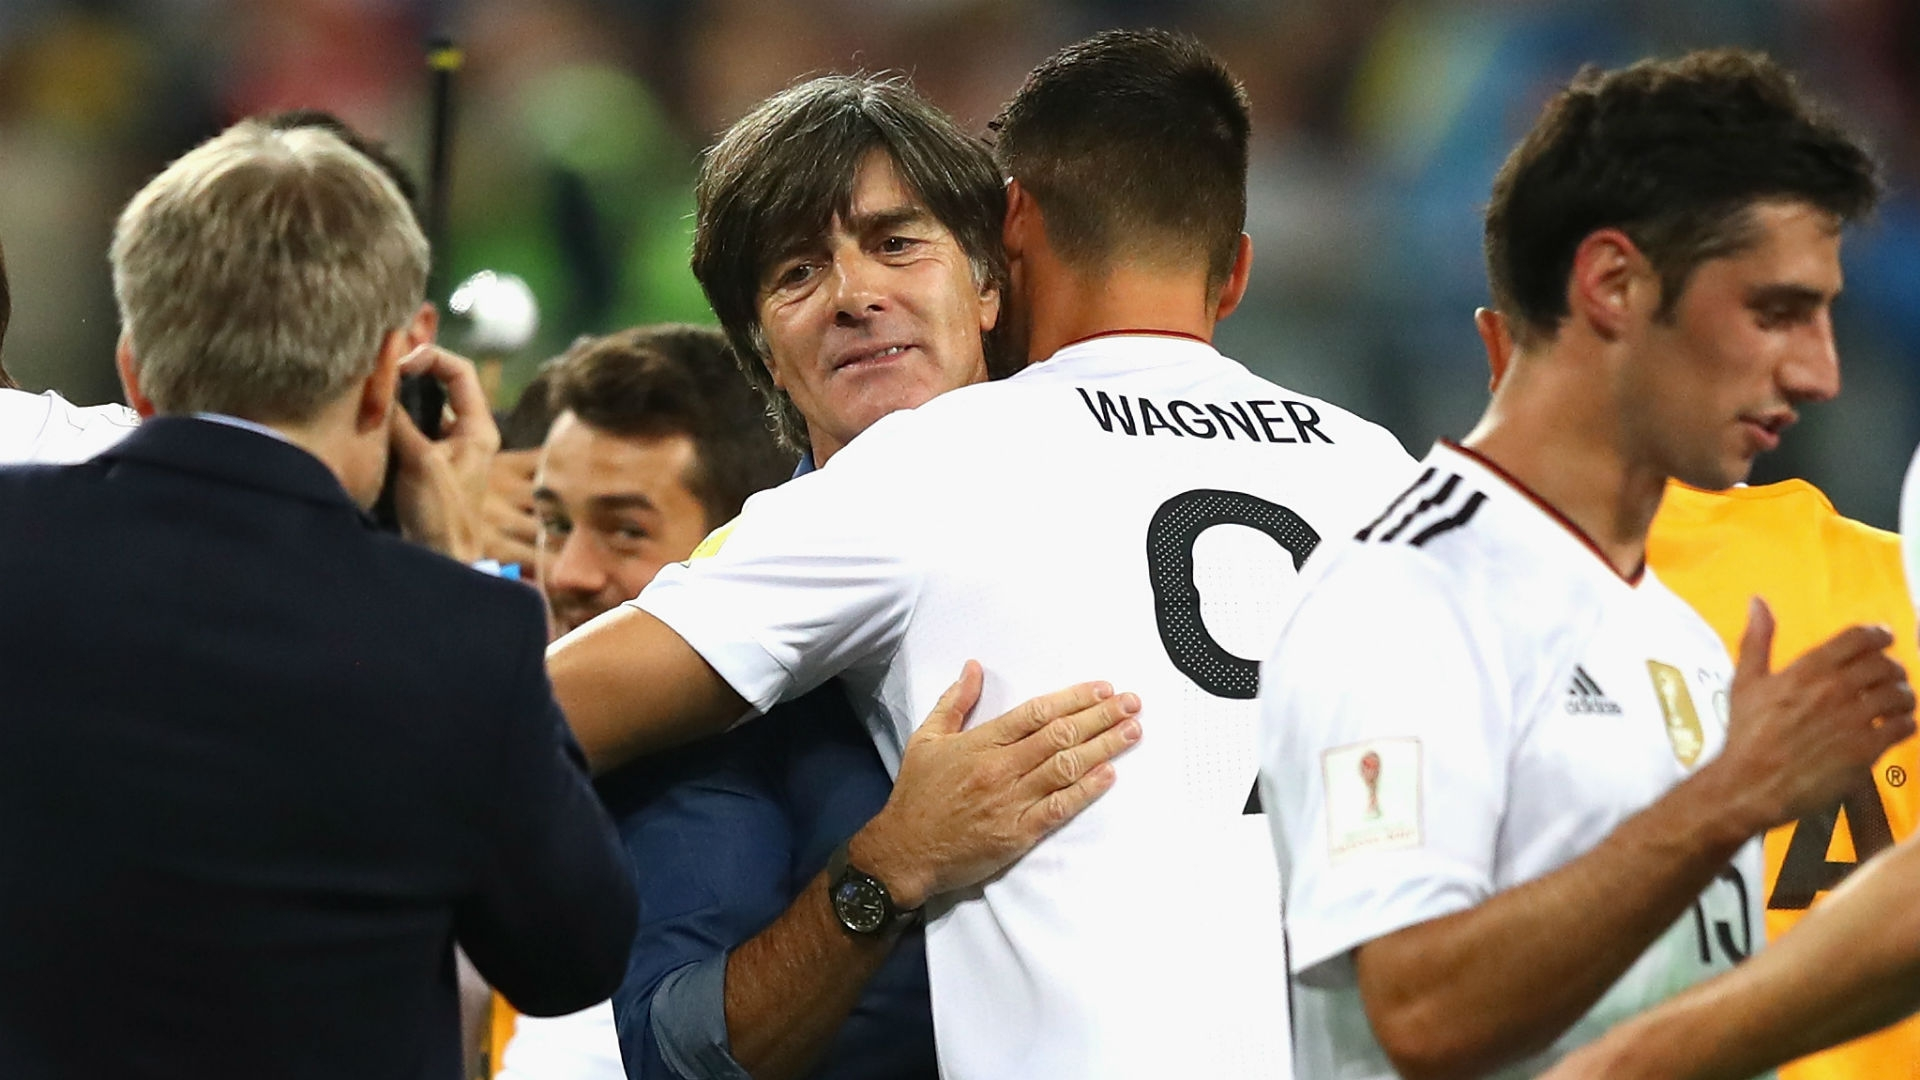 Joachim Low, the coach of Germany's senior team, says that the experiment of calling up young players to the team offered exactly the kind of results he had hoped for.